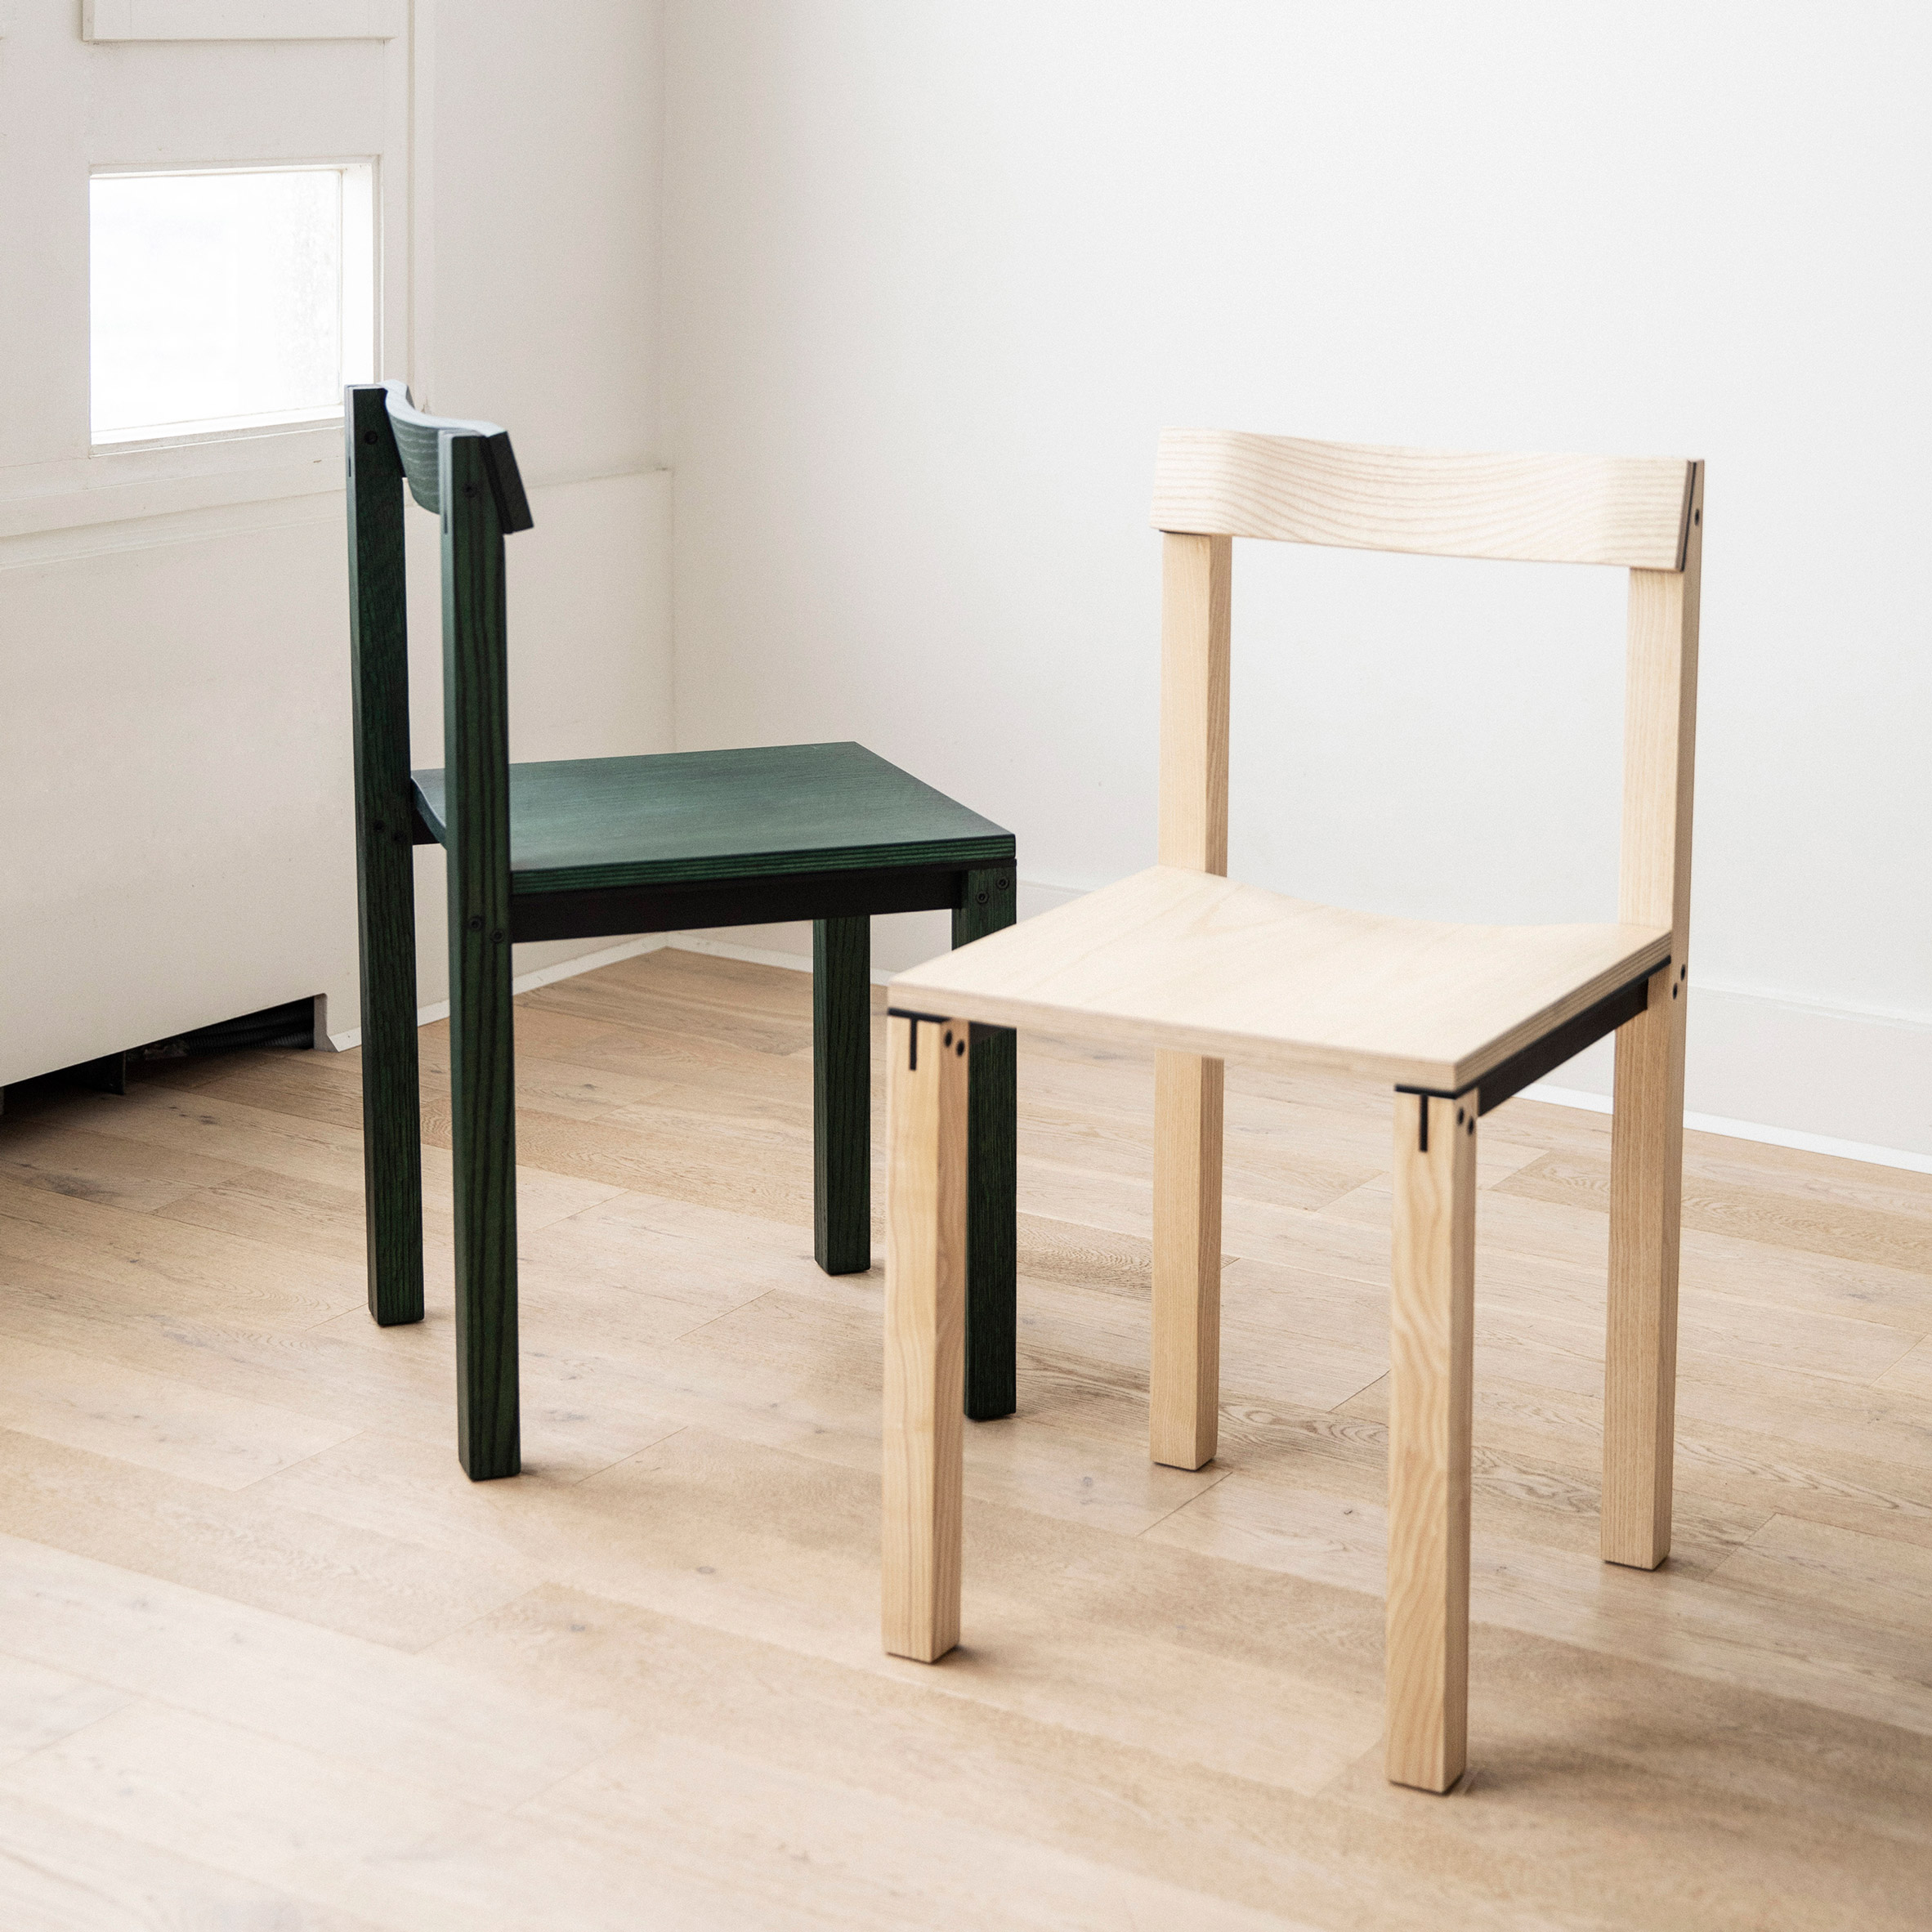 Tal chair in green oak and ash by Kann Design